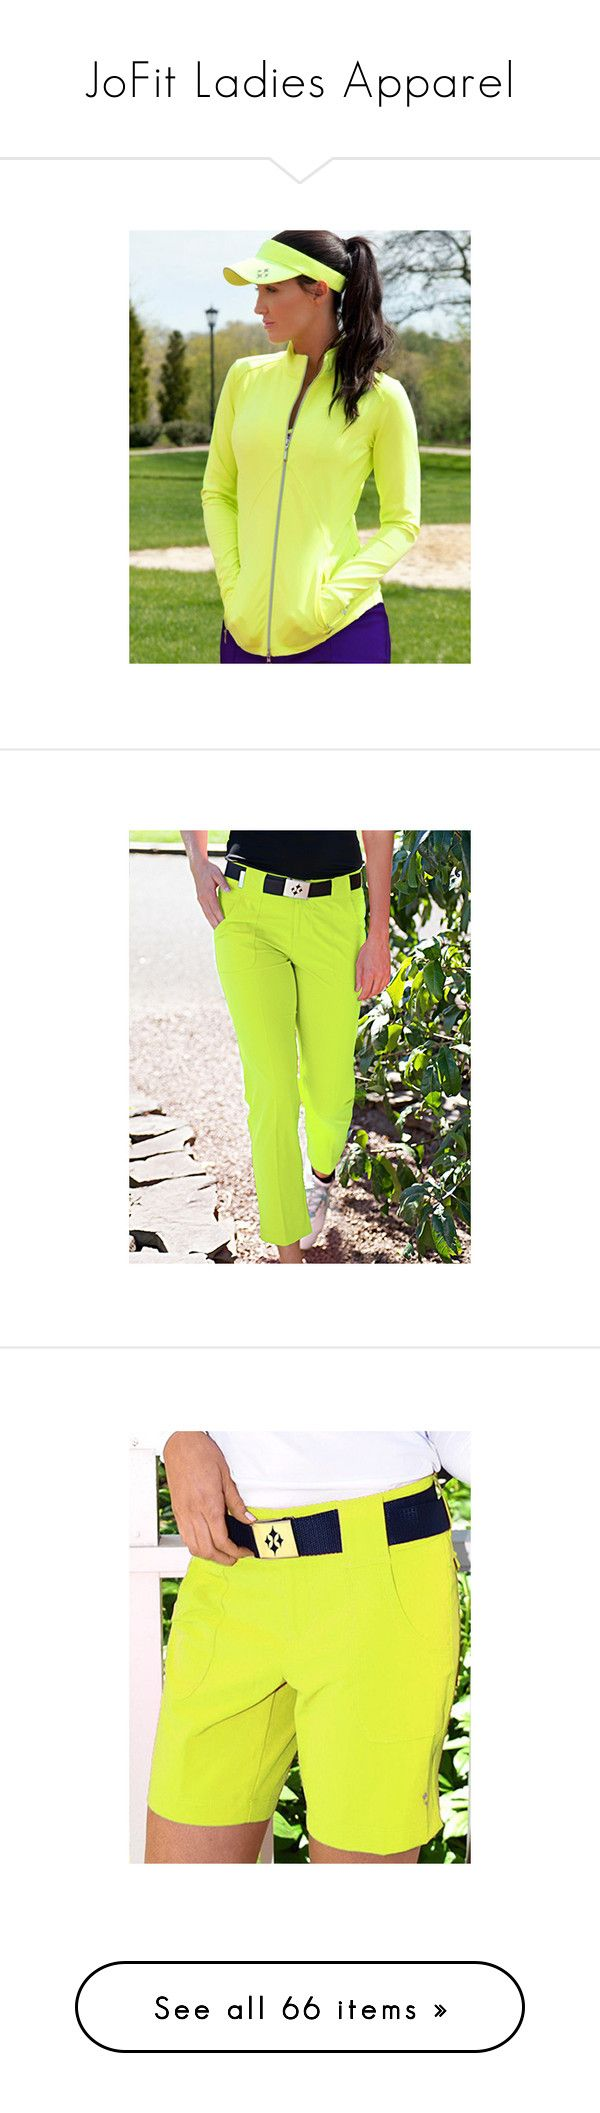 """JoFit Ladies Apparel"" by lorisgolfshoppe ❤ liked on Polyvore featuring pants, capris, green pants, cropped pants, cropped capri pants, golf pants, cropped trousers, tops, womens plus tops and purple golf shirt"